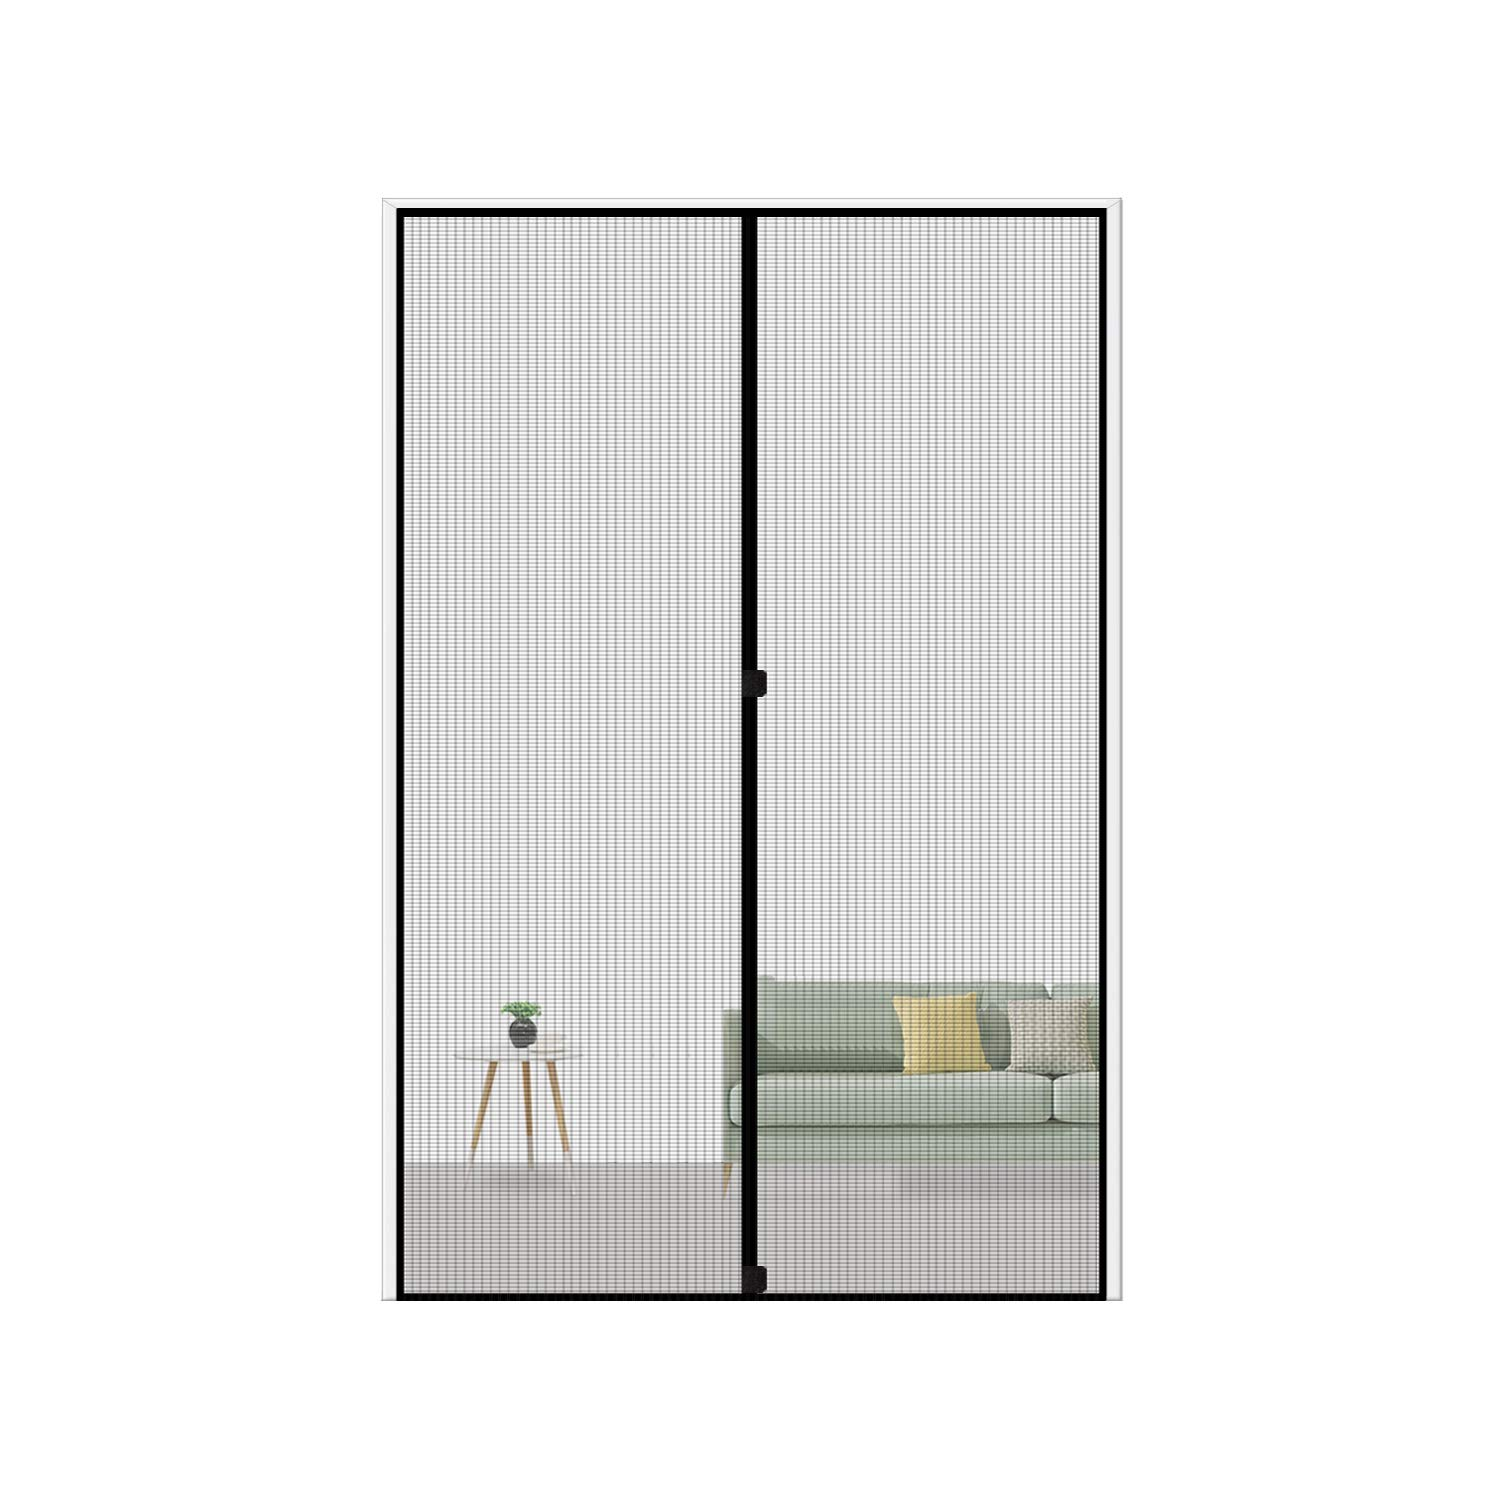 MAGZO Magnetic Screen Door 36 x 96, Reinforced Fiberglass Mesh Curtain Entry Door Mesh with Full Frame Hook&Loop Fits Door Size up to 36''x96'' Max-Grey by MAGZO